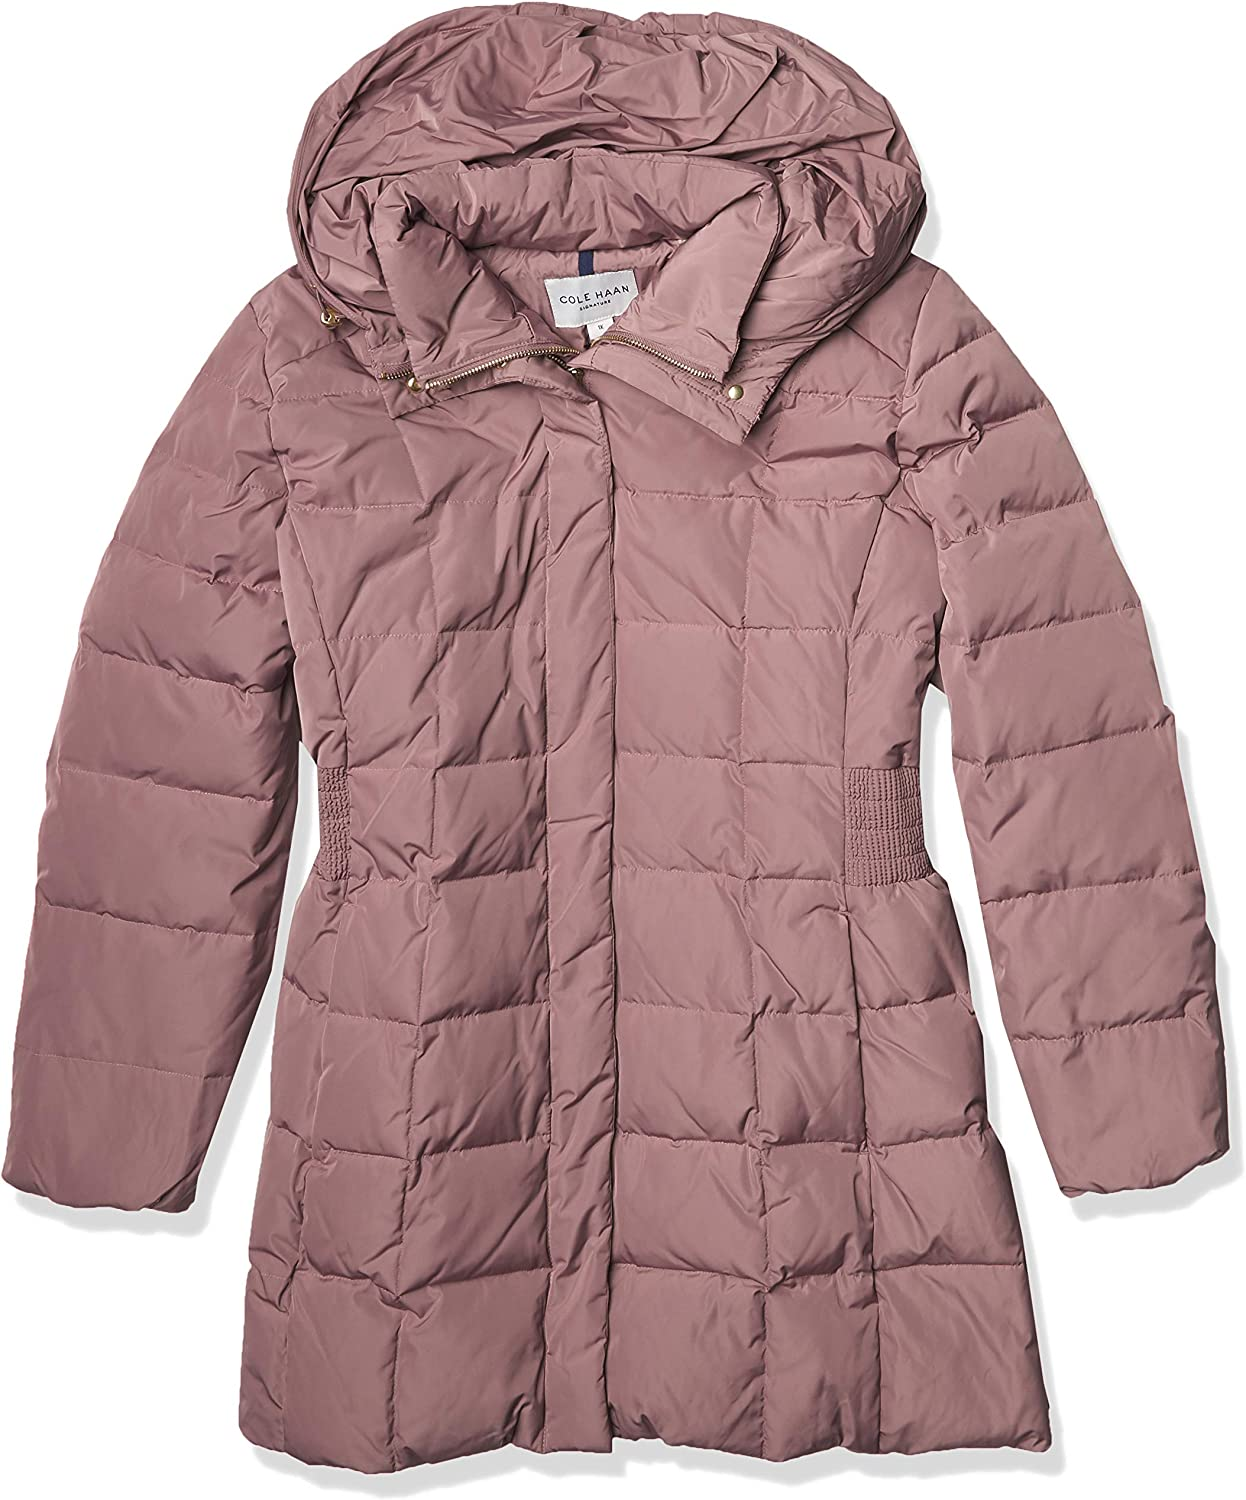 Cole Haan Women's Virginia Beach Direct store Mall Taffeta Down Coat Front and Bib Dramatic With